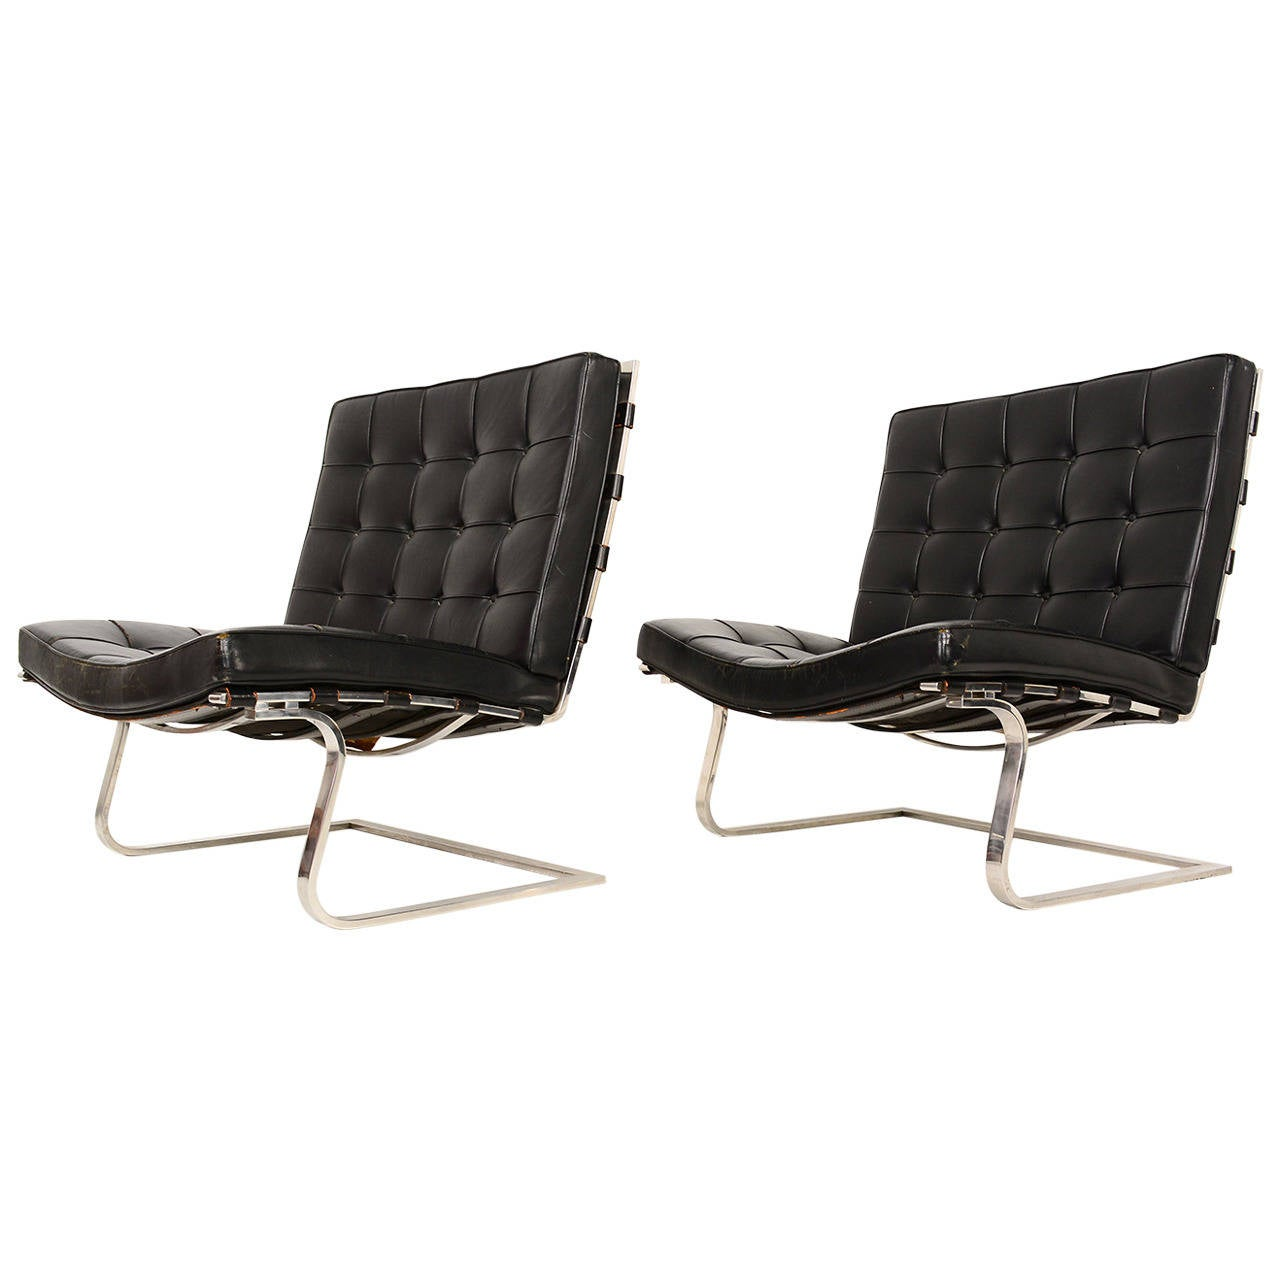 Knoll Sessel Mies Von Der Rohe Tugendhat Lounge Sessel Für Knoll